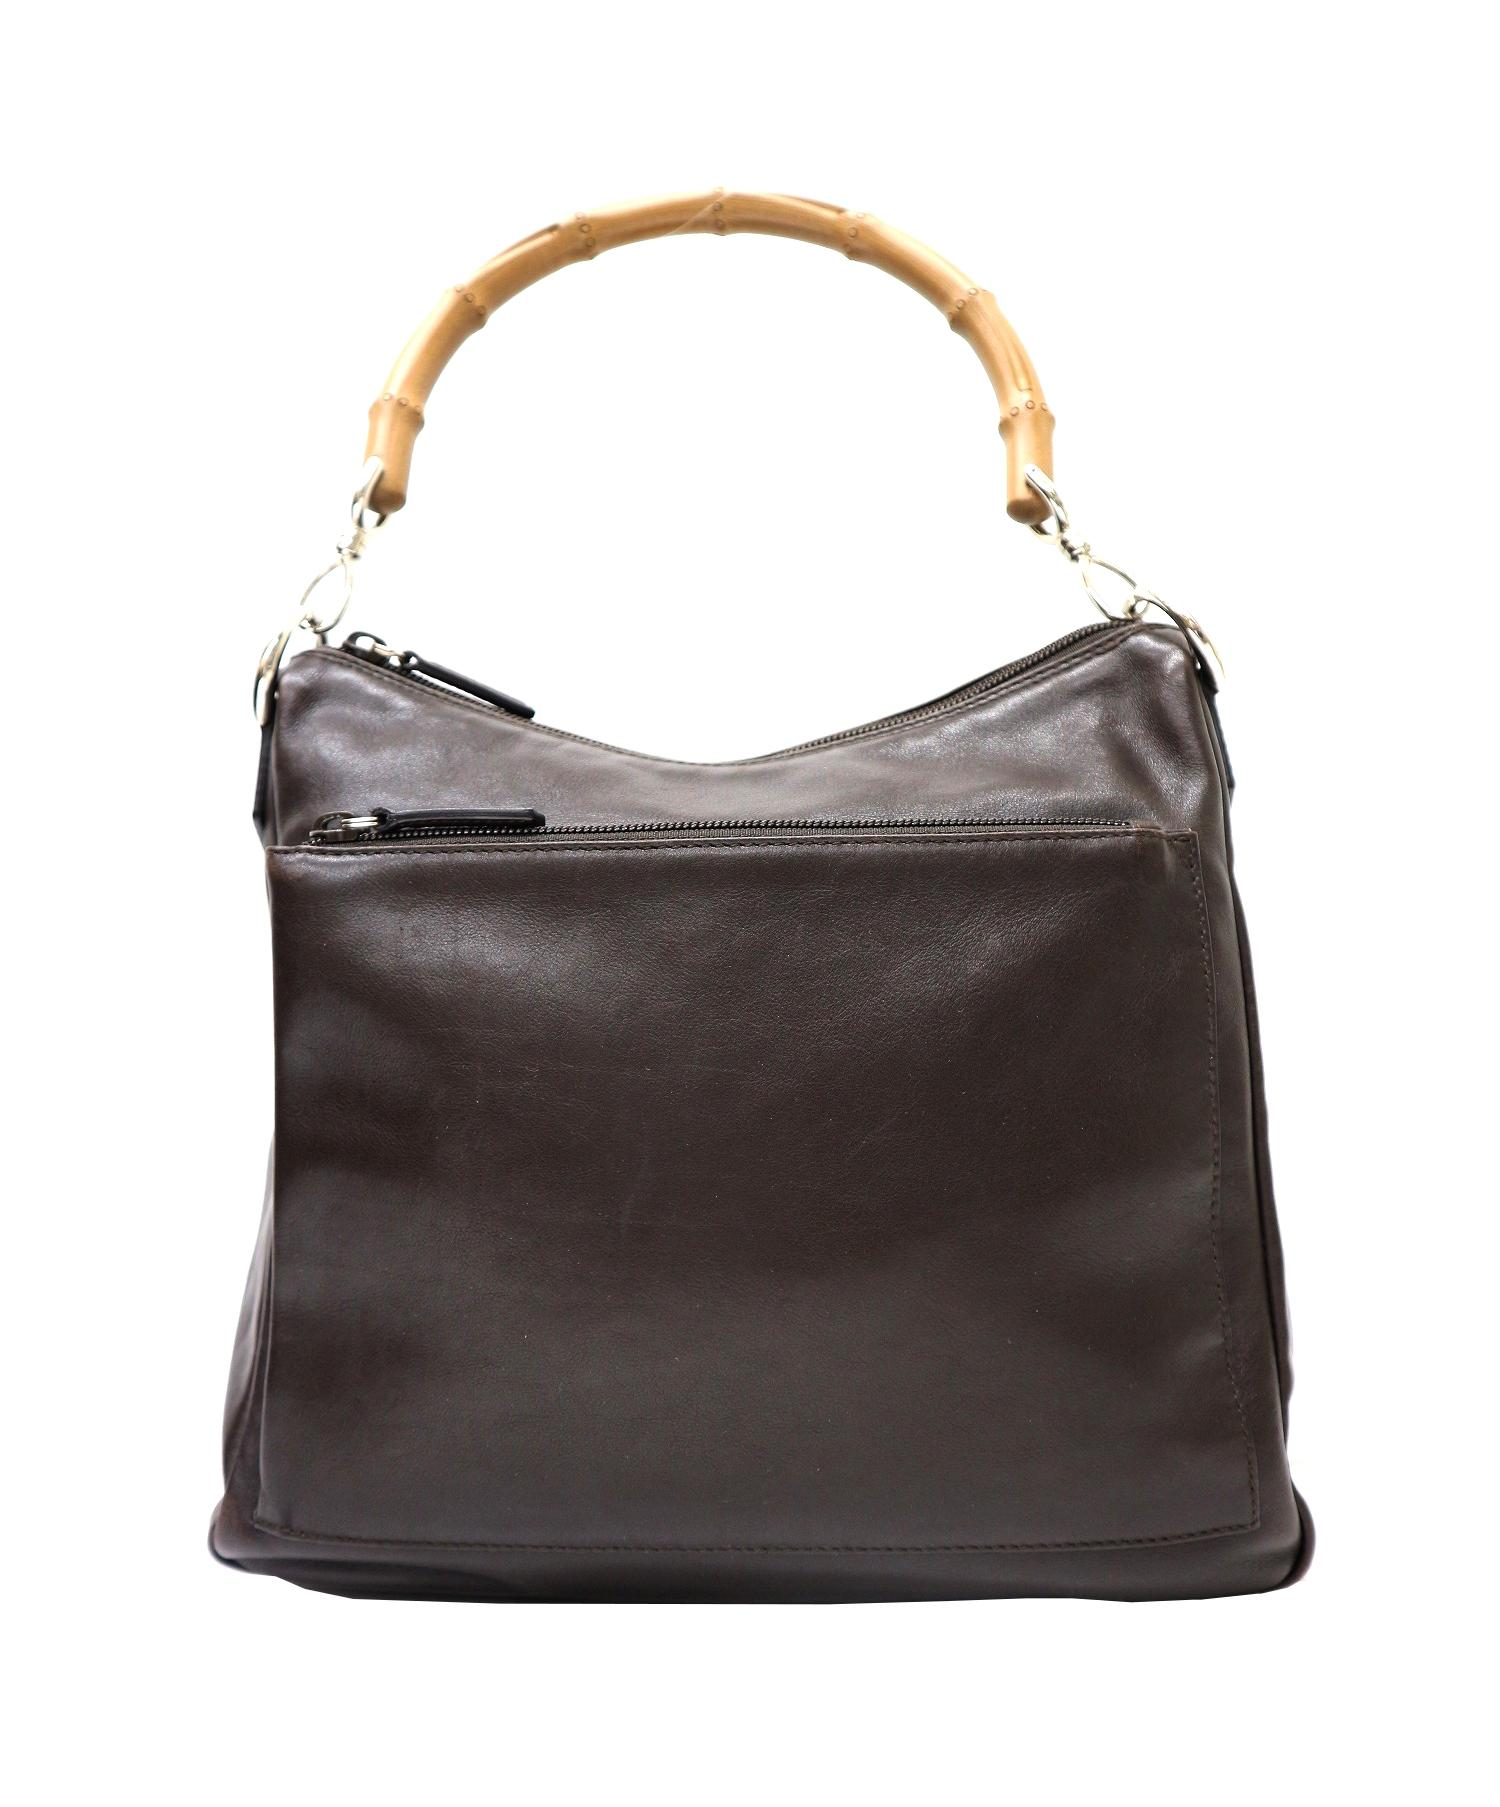 cheap for discount 2200d 1dd2b 中古・古着通販】GUCCI (グッチ) バンブーハンドバッグ ブラウン ...